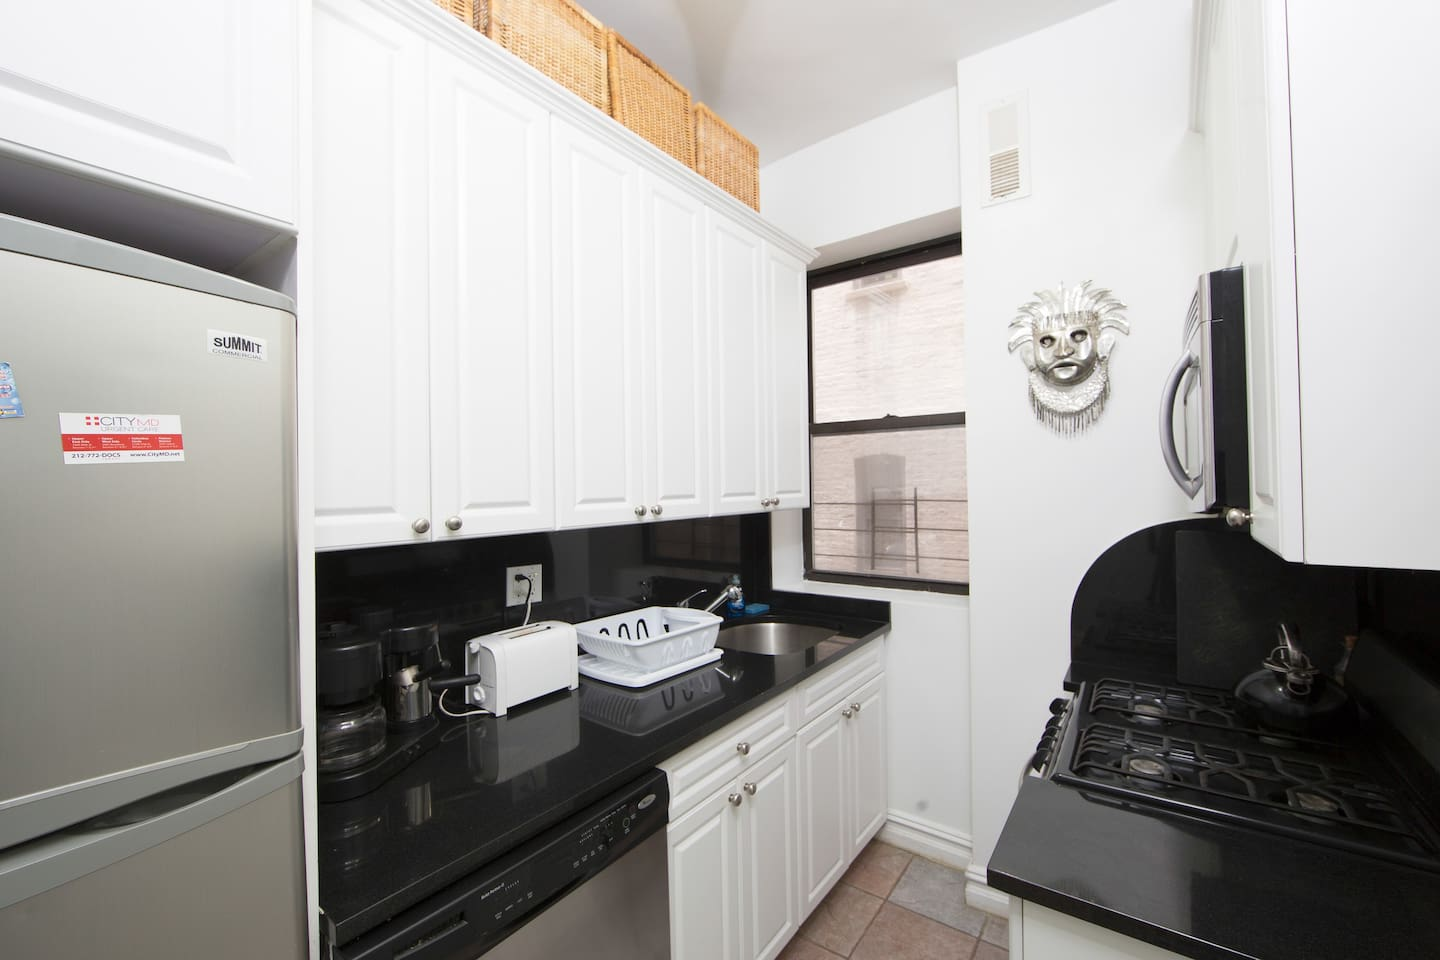 Stainless steel appliances.  Dishwasher, oven, microwave, fridge/freezer and stove.  Pots and pans and everything you need is provided.